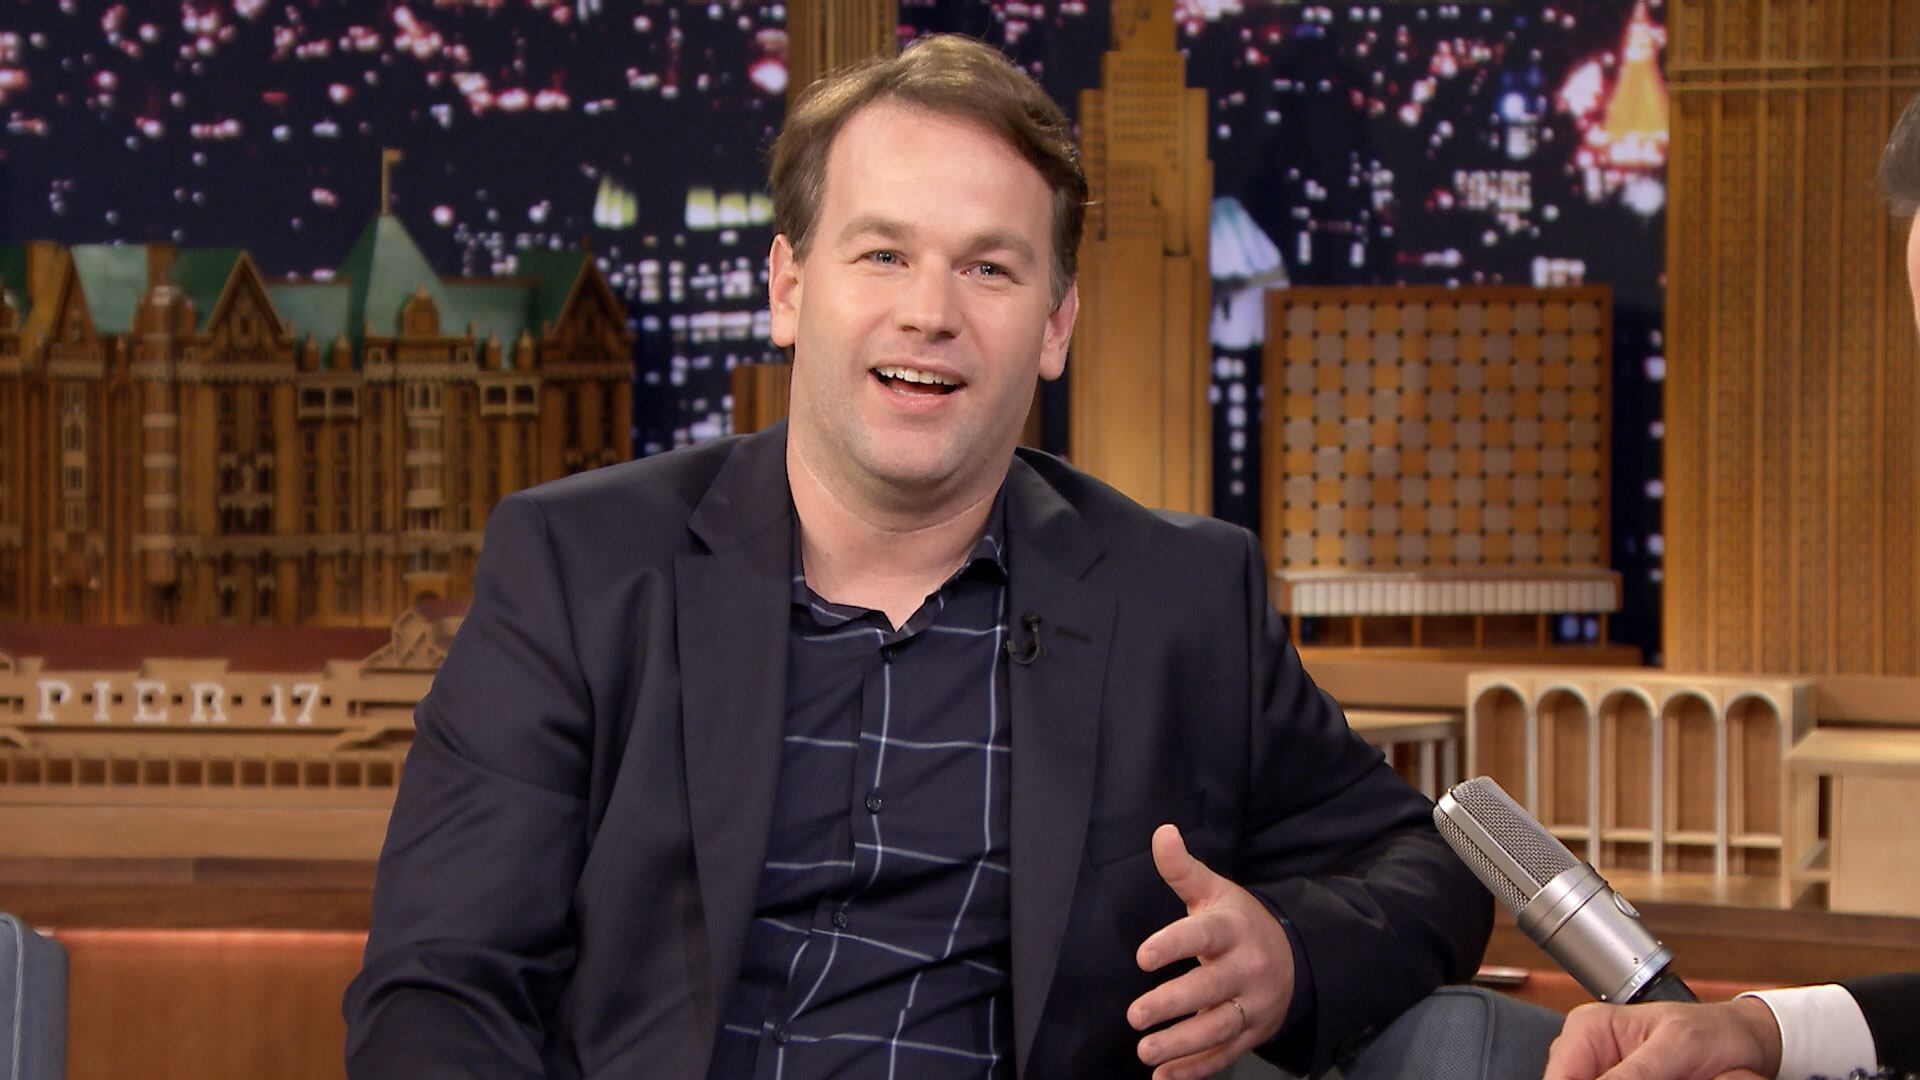 Mike Birbiglia Ate Some of His Friend's Dad's Ashes